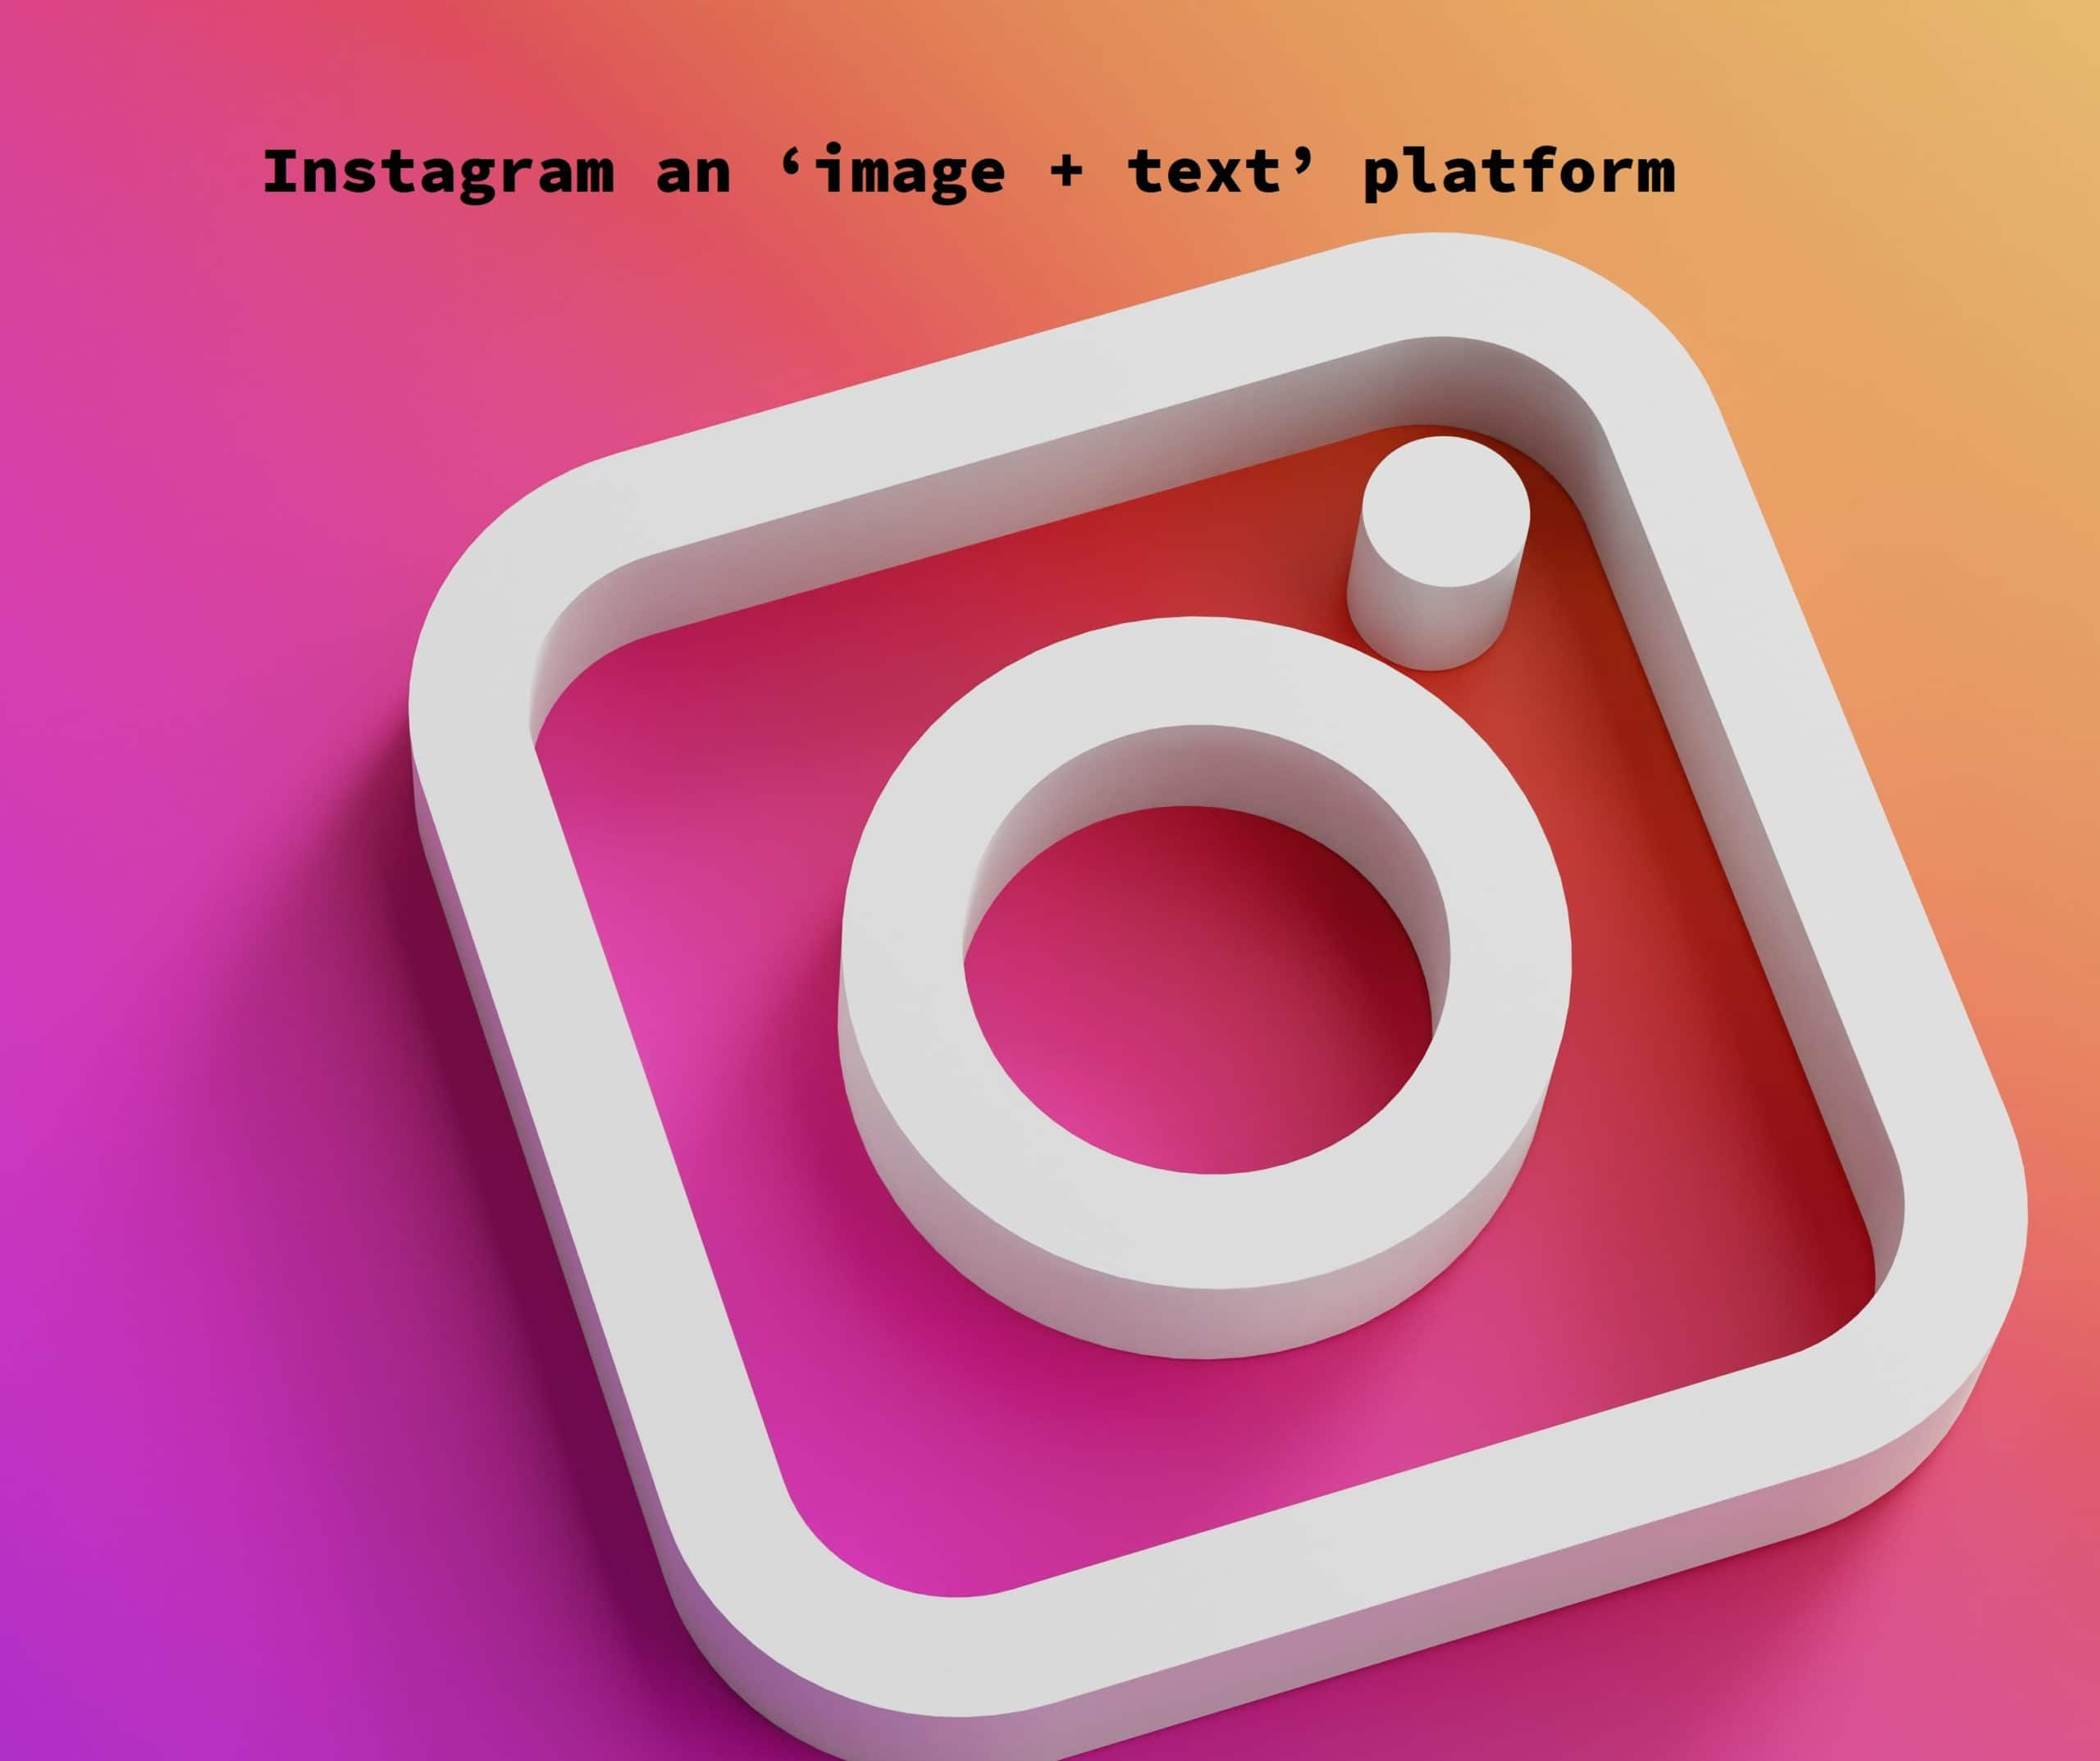 Should Text Be On Instagram Image